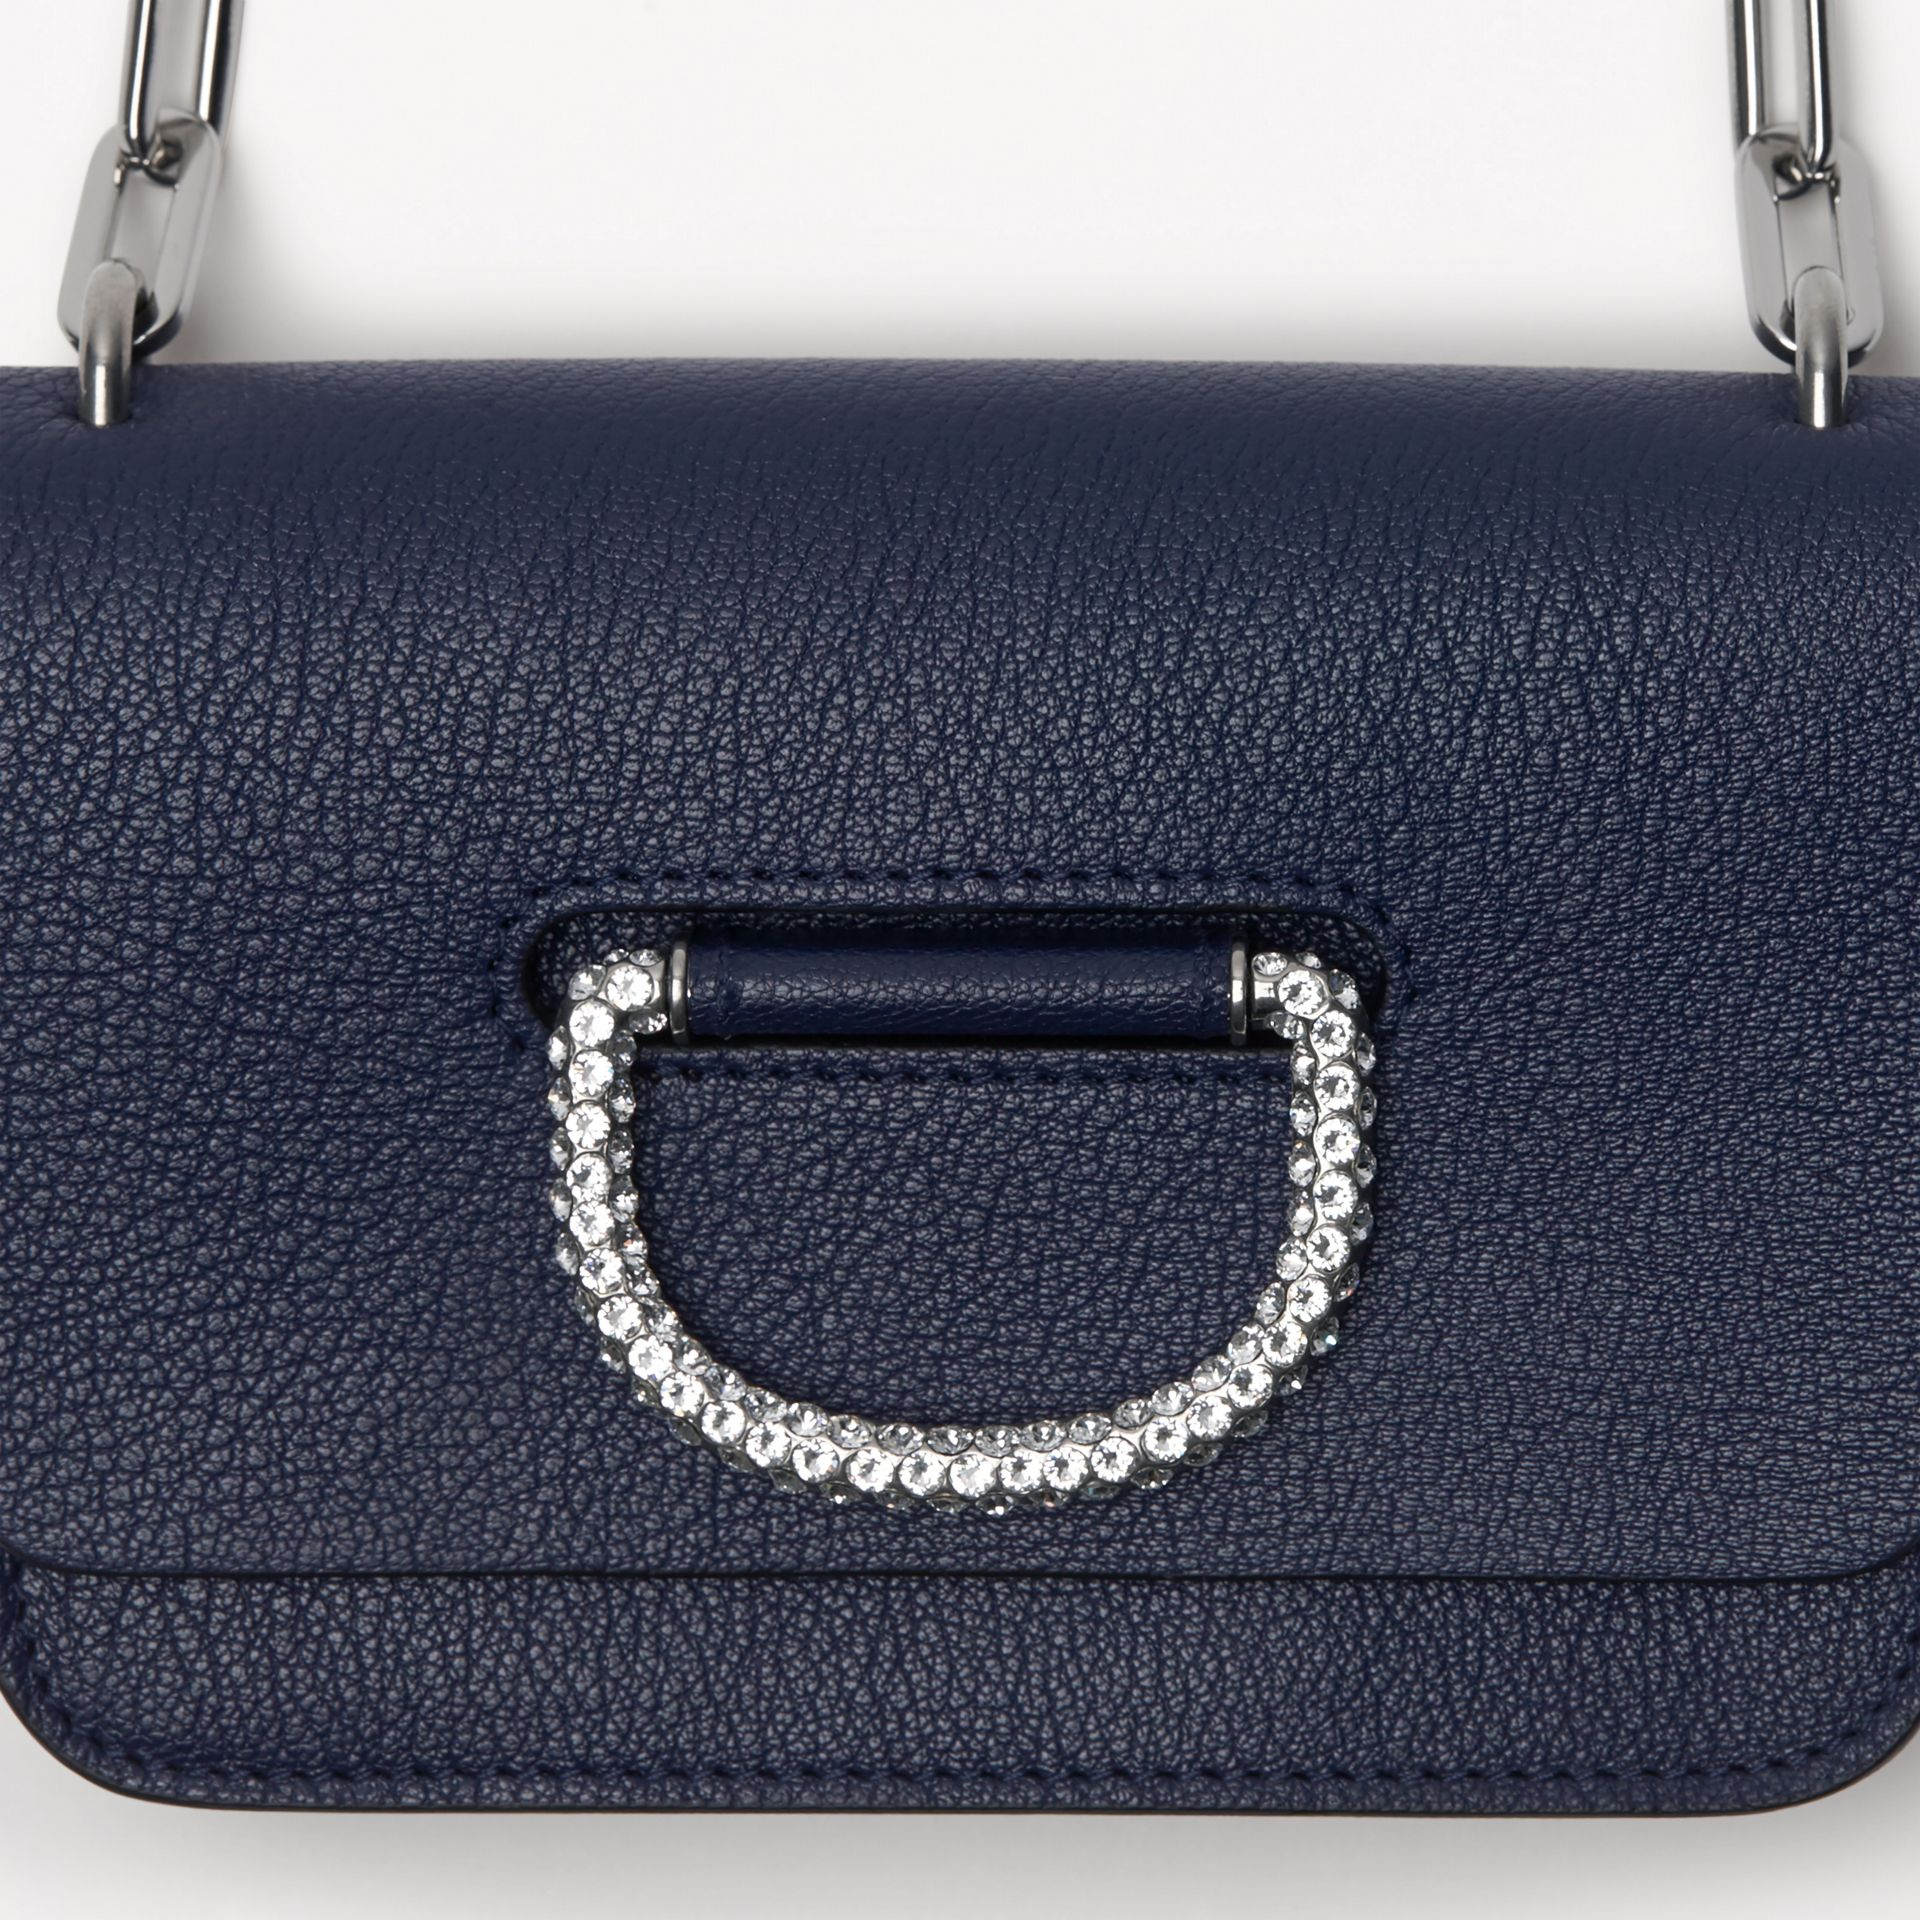 Mini sac The D-ring en cuir avec cristaux (Bleu Régence) - Femme | Burberry Canada - photo de la galerie 1